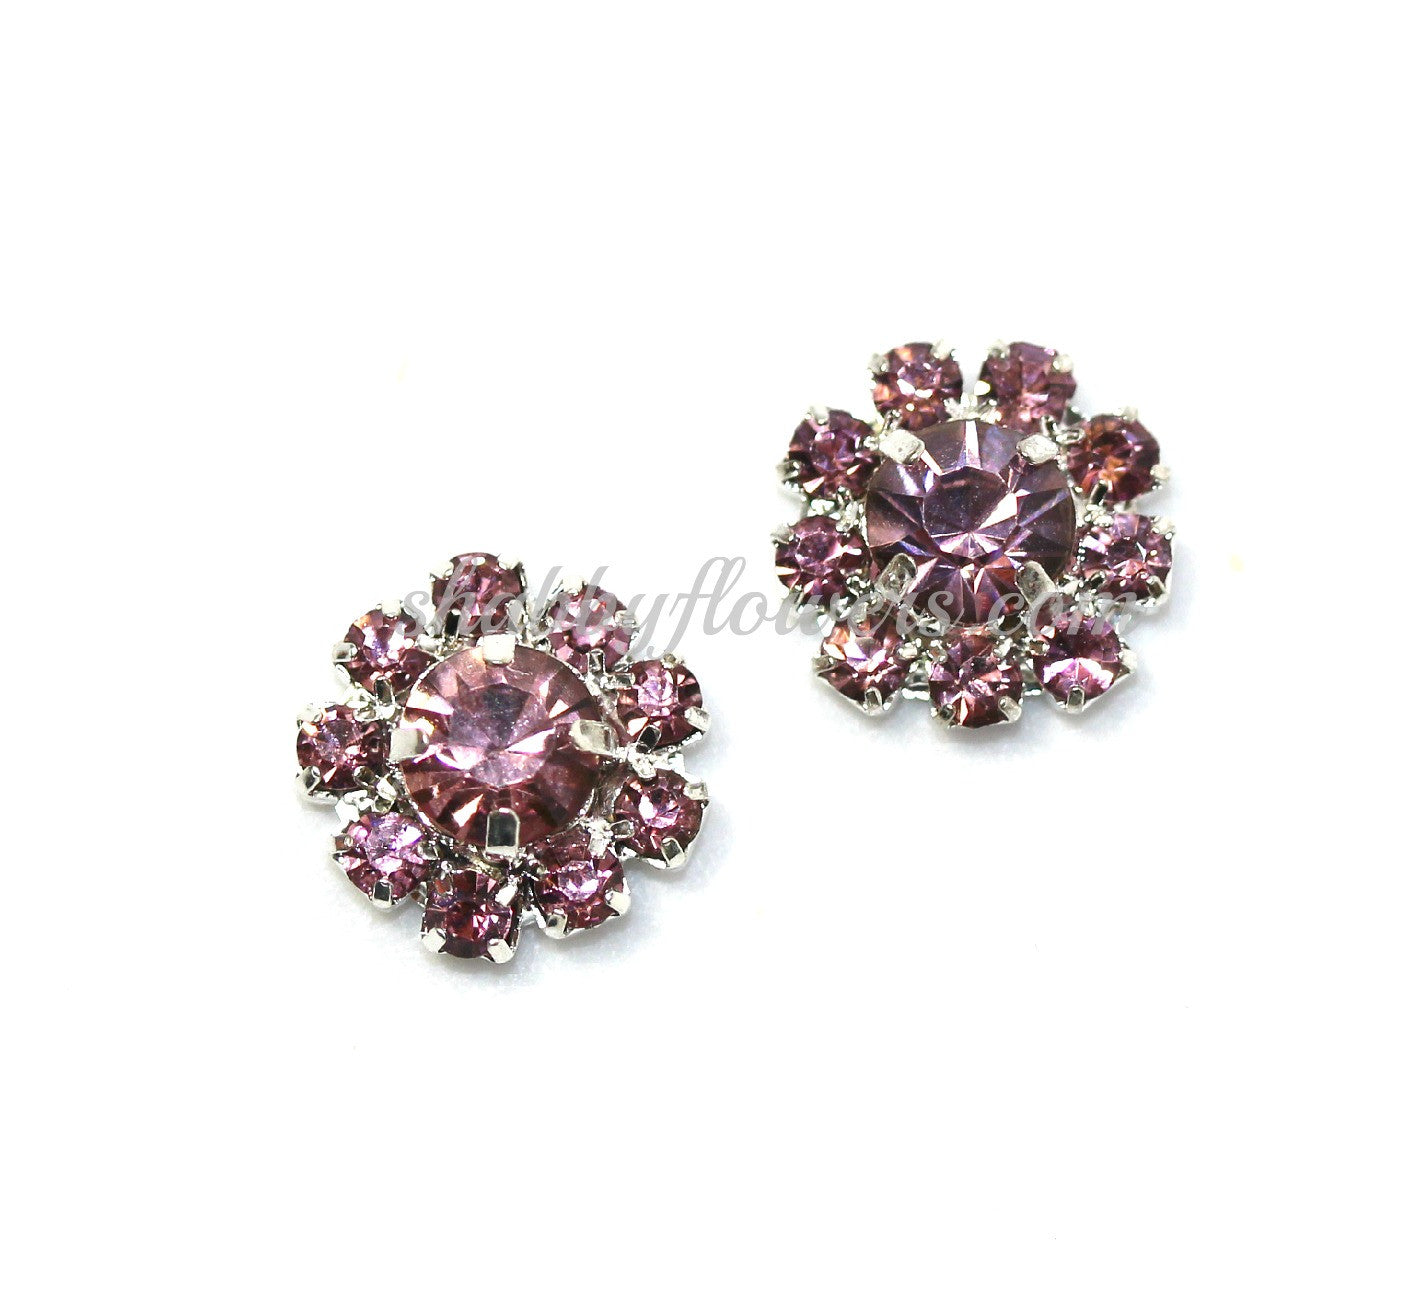 Embellishment - Small Rhinestone in LAVENDER - shabbyflowers.com